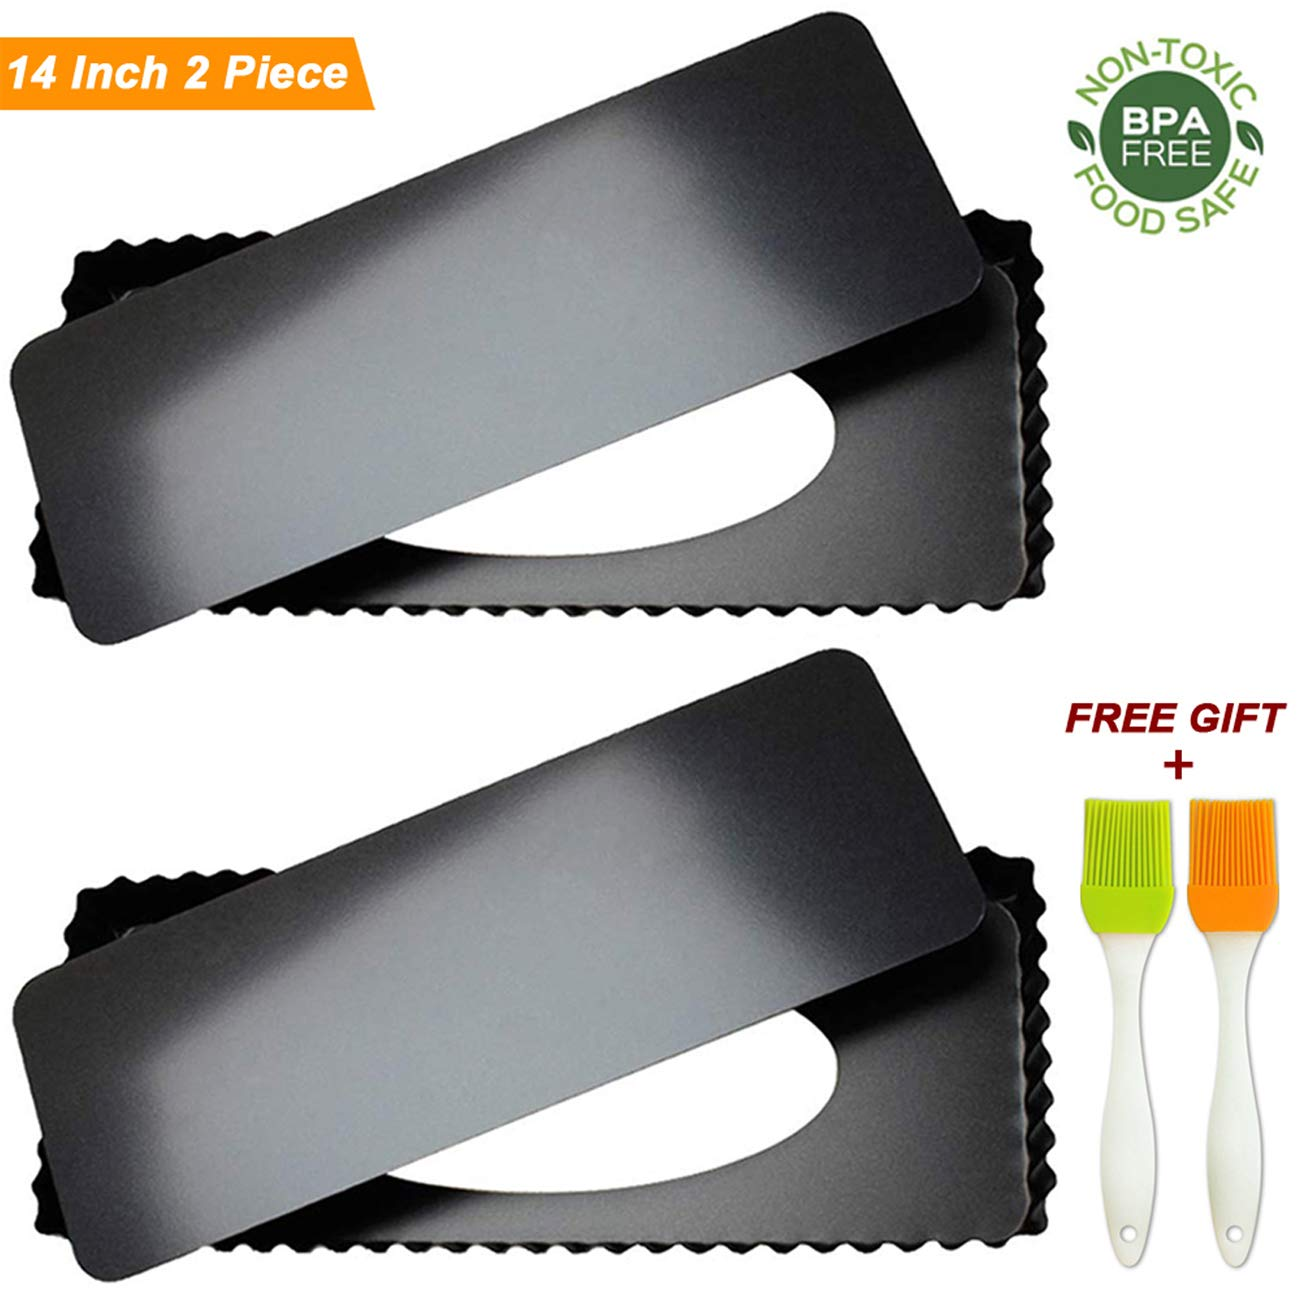 Tart Pie Pan 14 Inch with Removable Loose Bottom Non-Stick Rectangular Fluted Flan Quiche Pizza Cake Pans Carbon Steel 2PCS